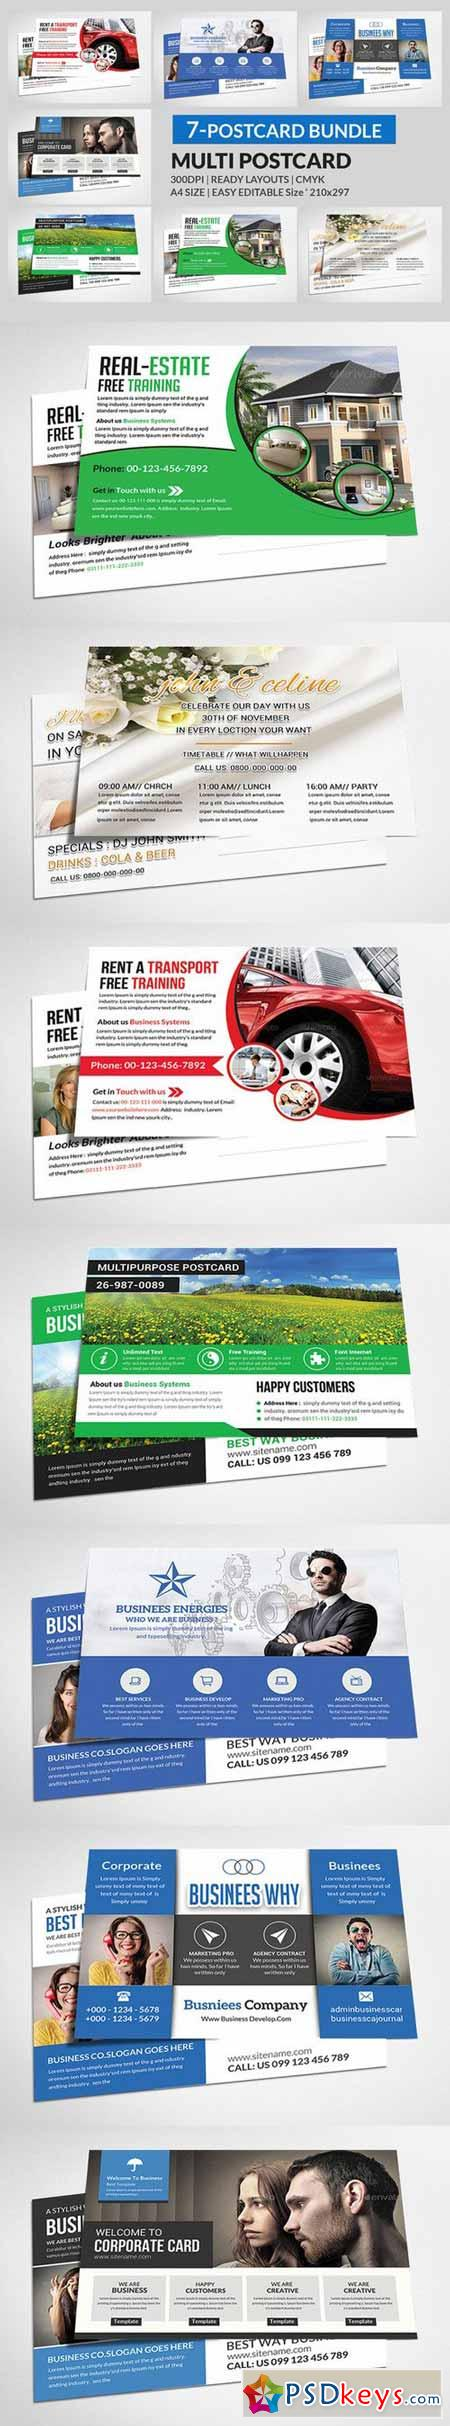 Multipurpose Business Postcard Bundle 342410